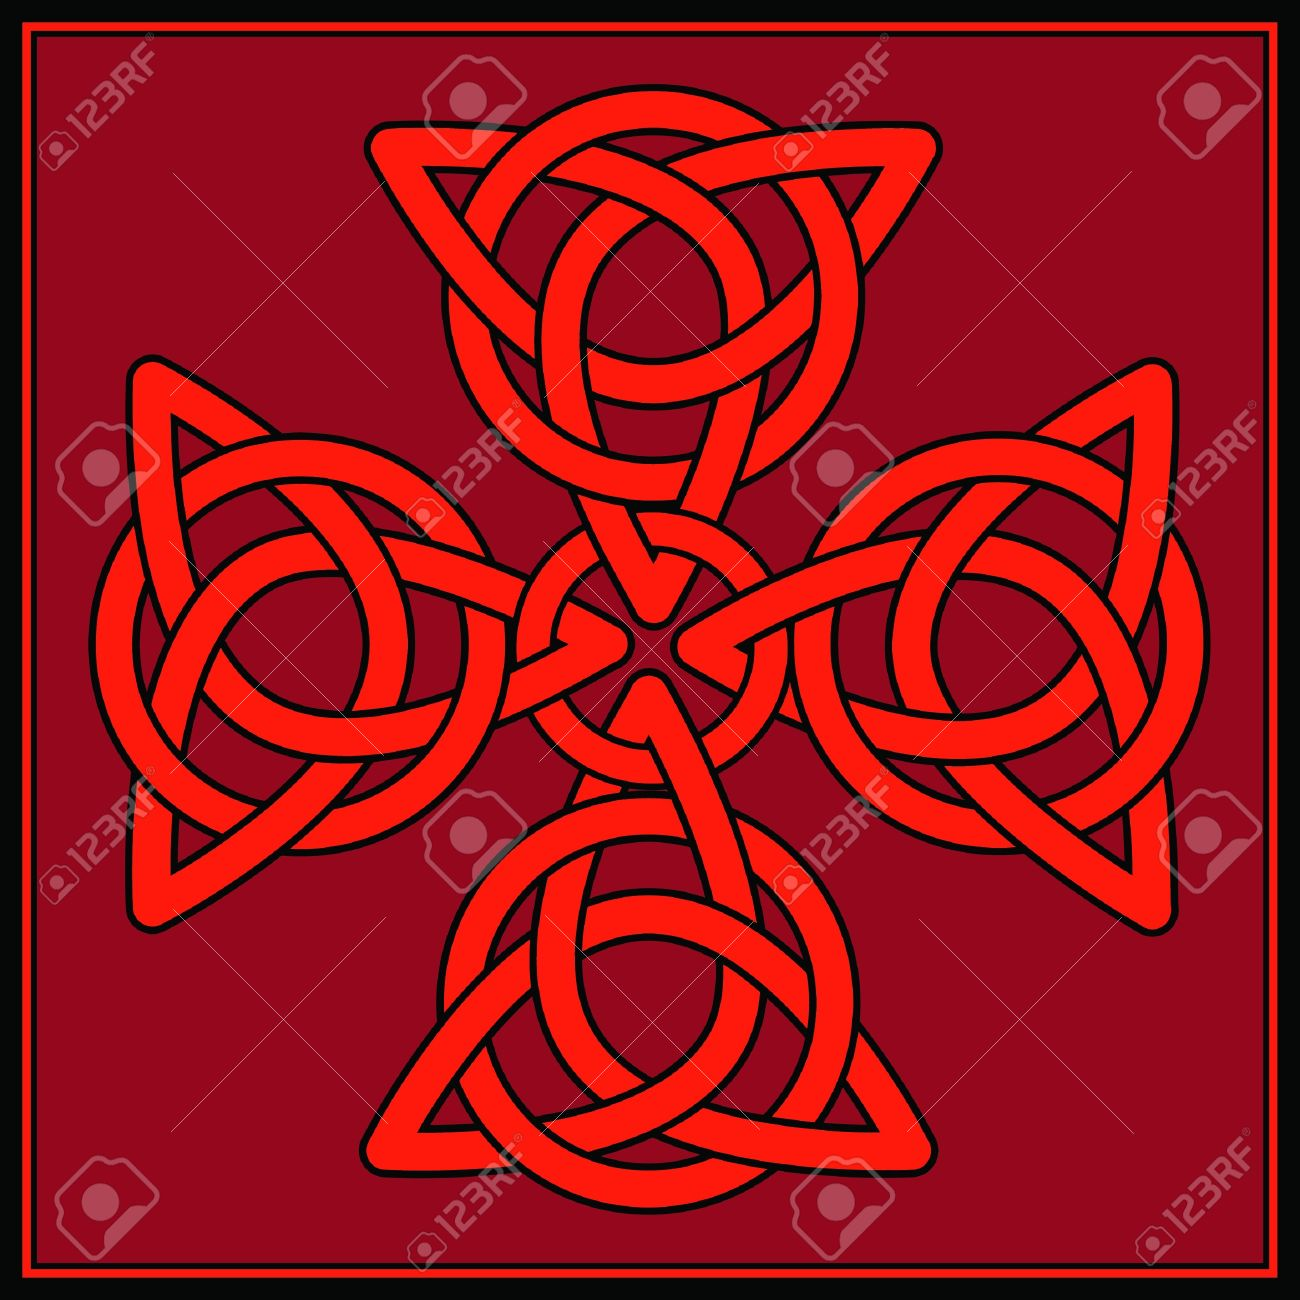 a cross formed of celtic knots in shades of red and black royalty